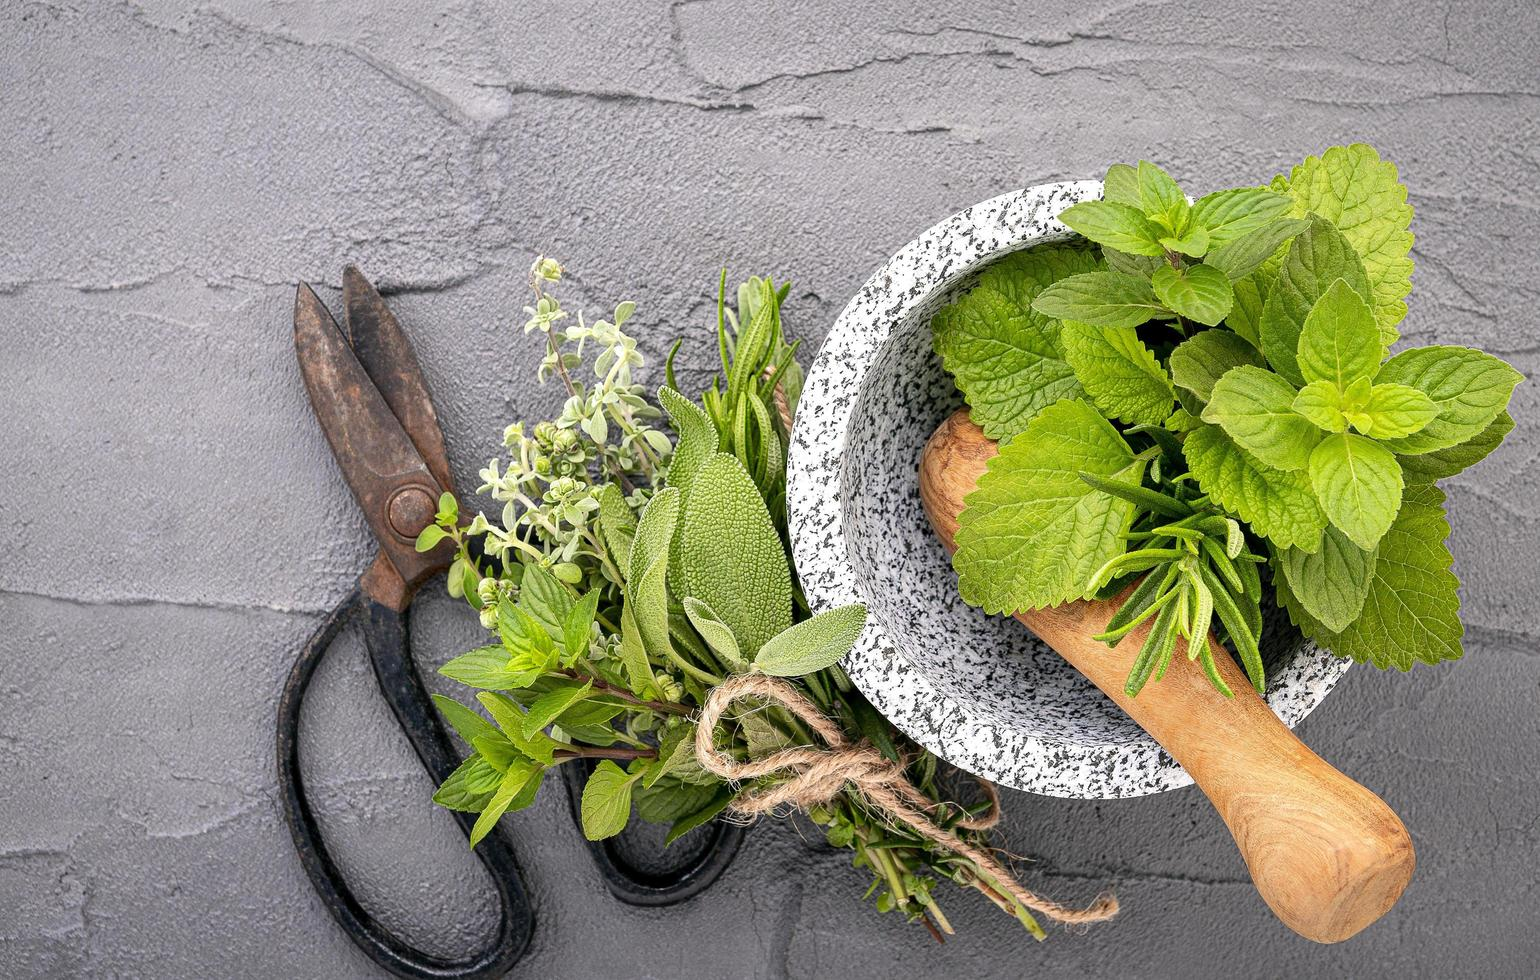 Herbs in a mortar on a gray background photo